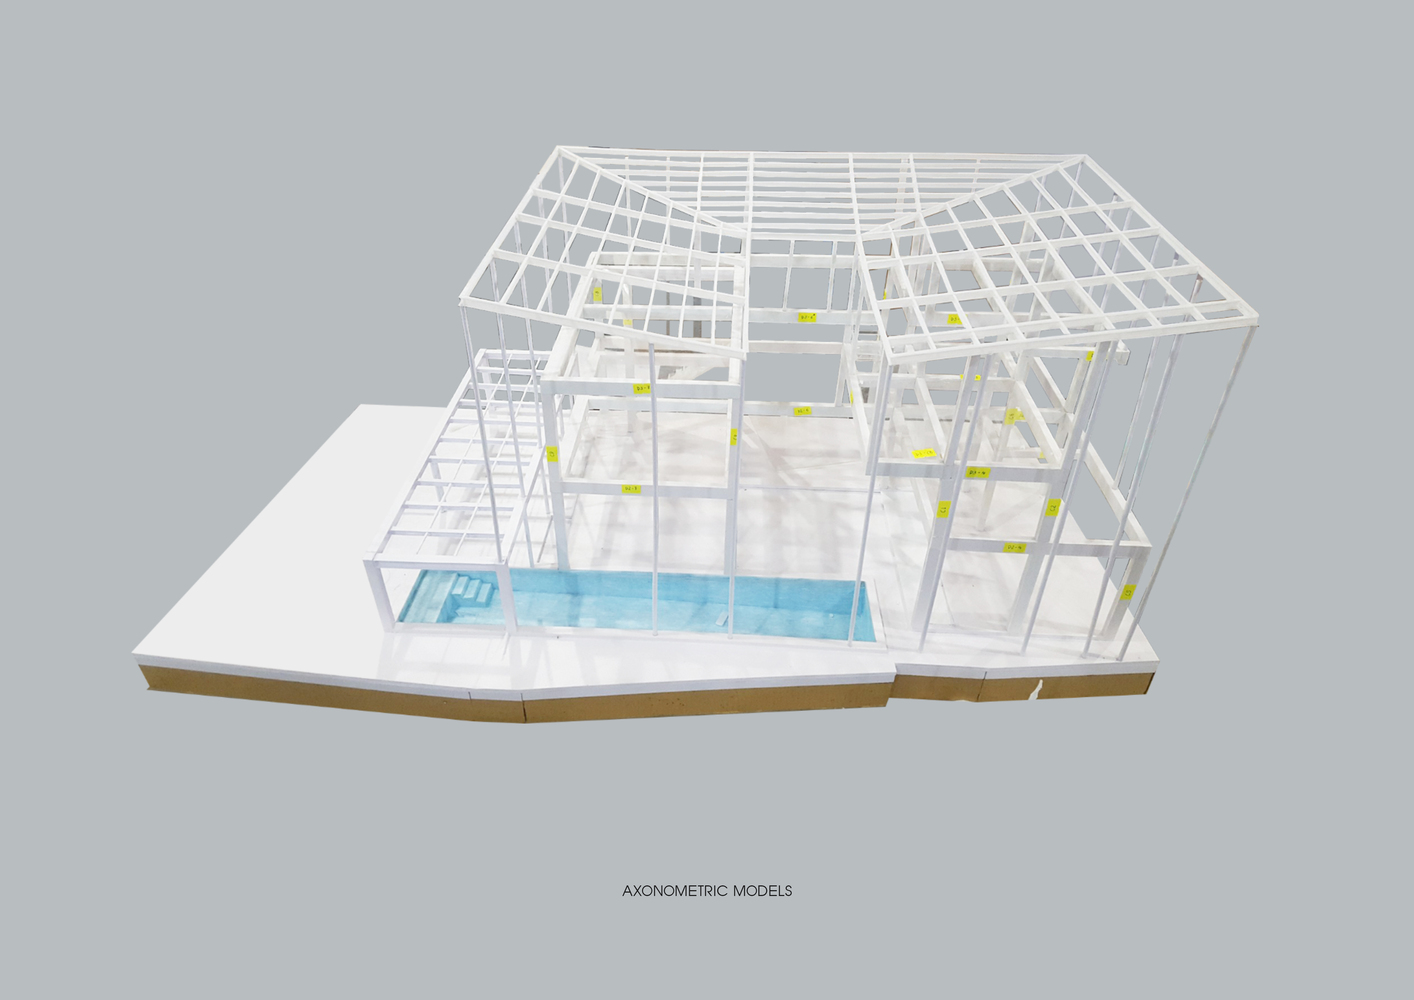 PT_Axonometric_Structure_Model_1